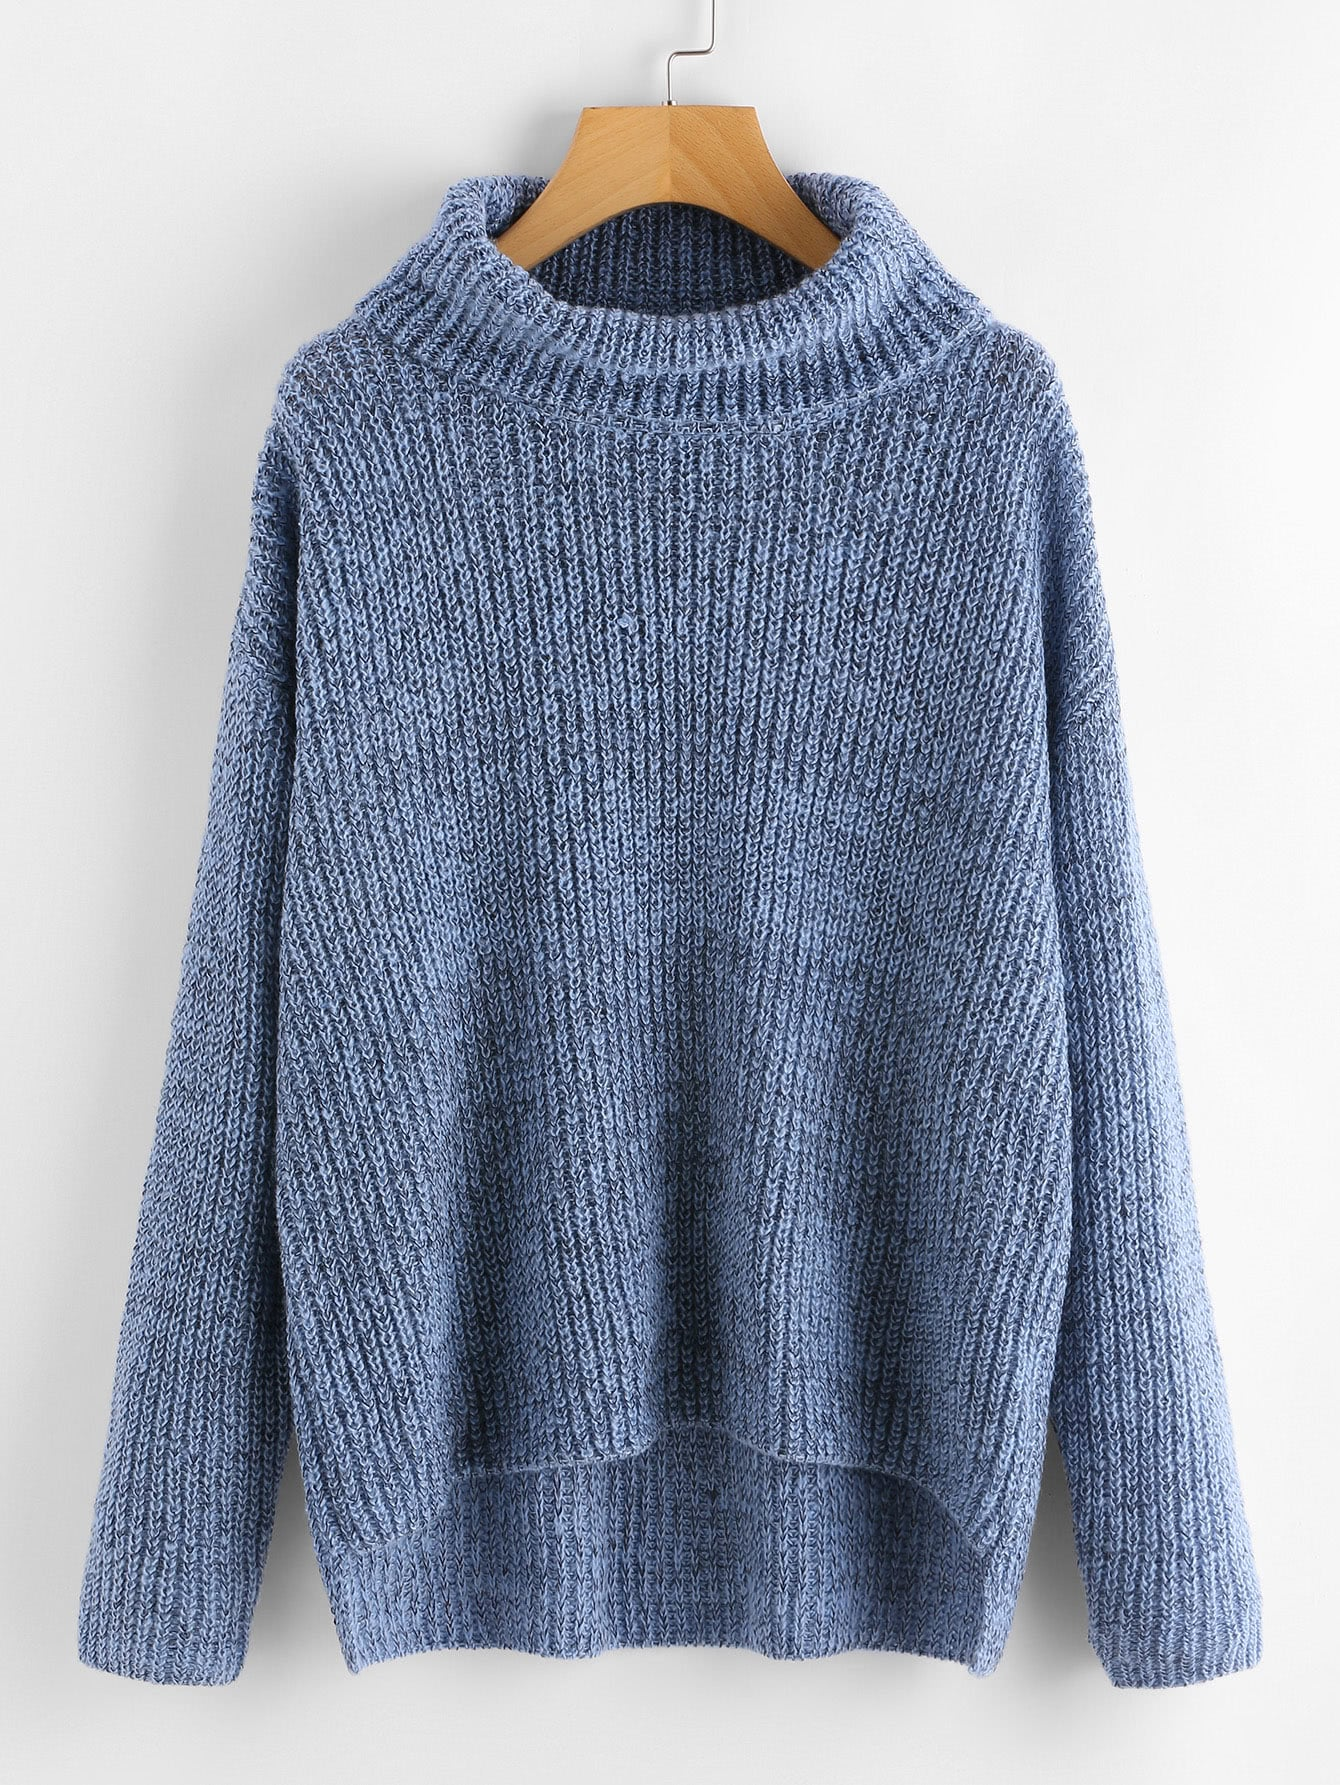 Dip Hem Turtle Neck Sweater sweater170818456